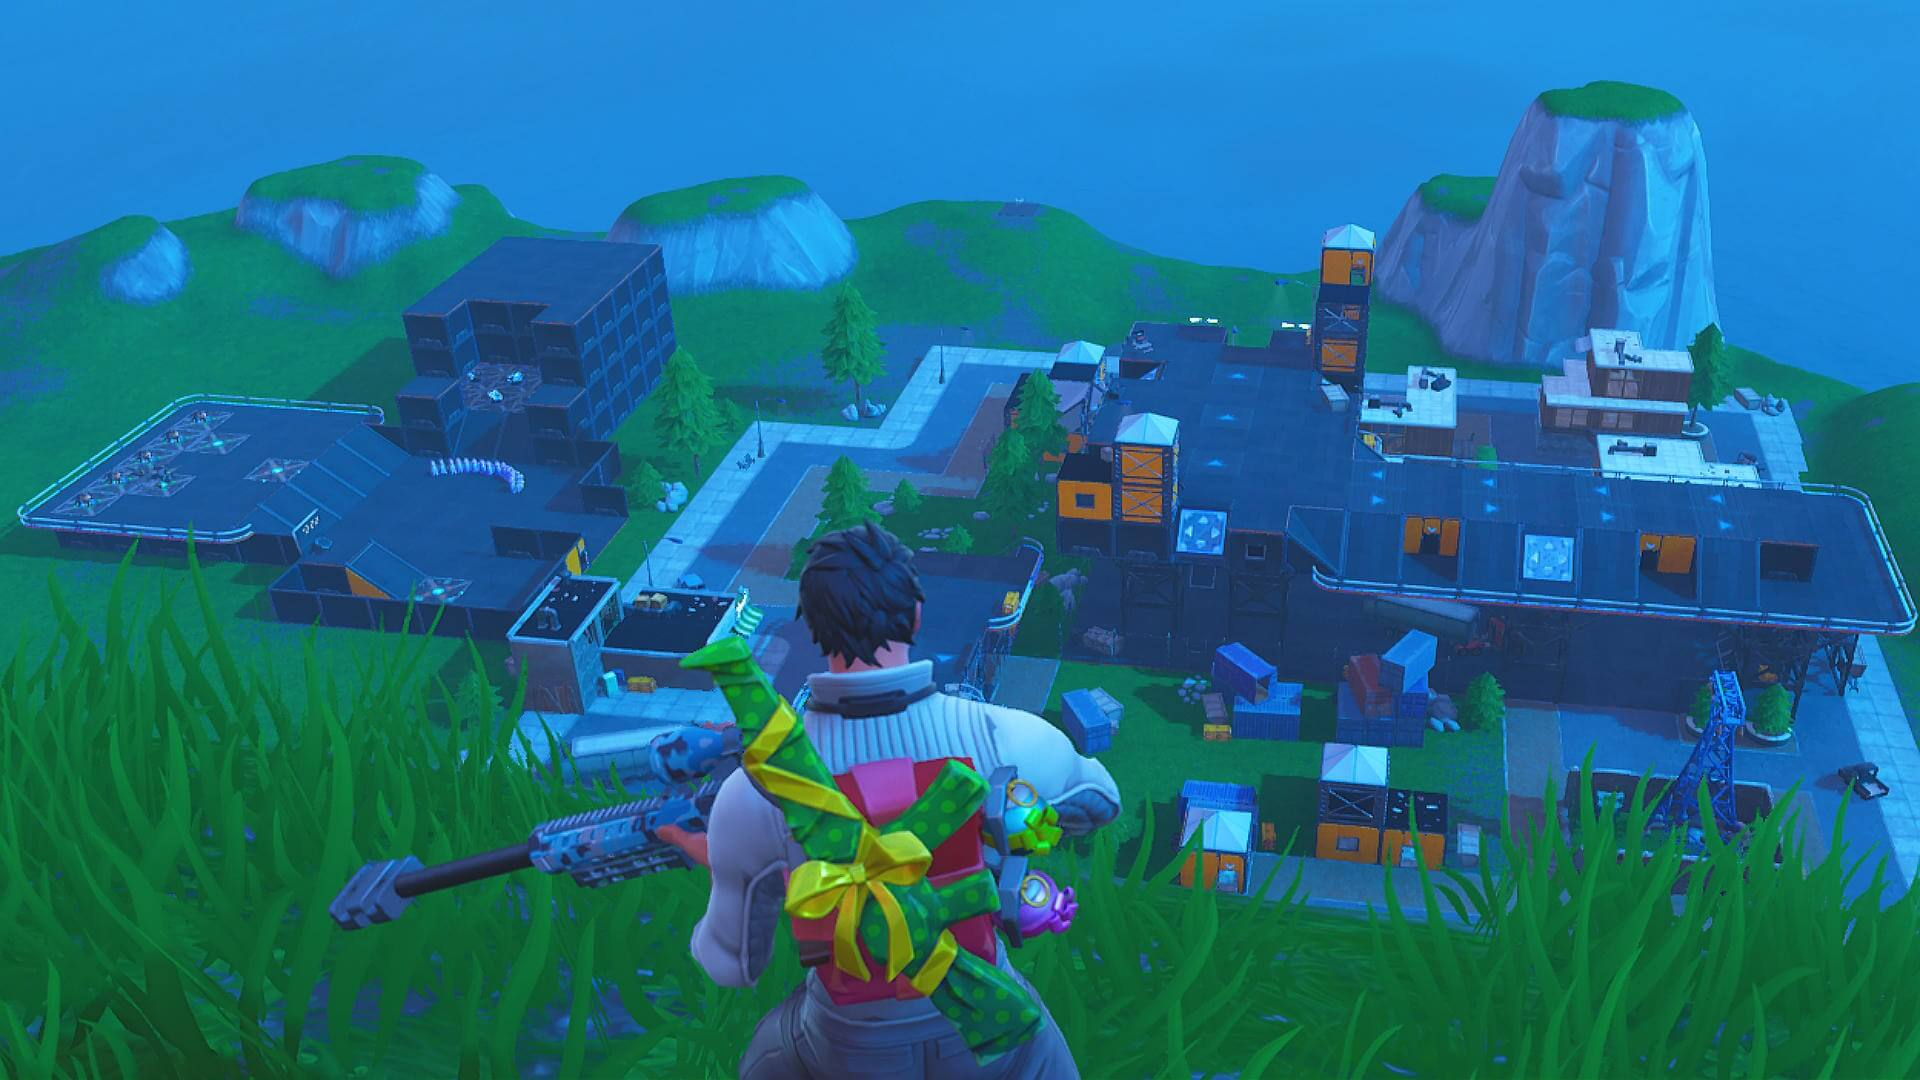 Weezer World is an island in 'Fortnite' featuring music from